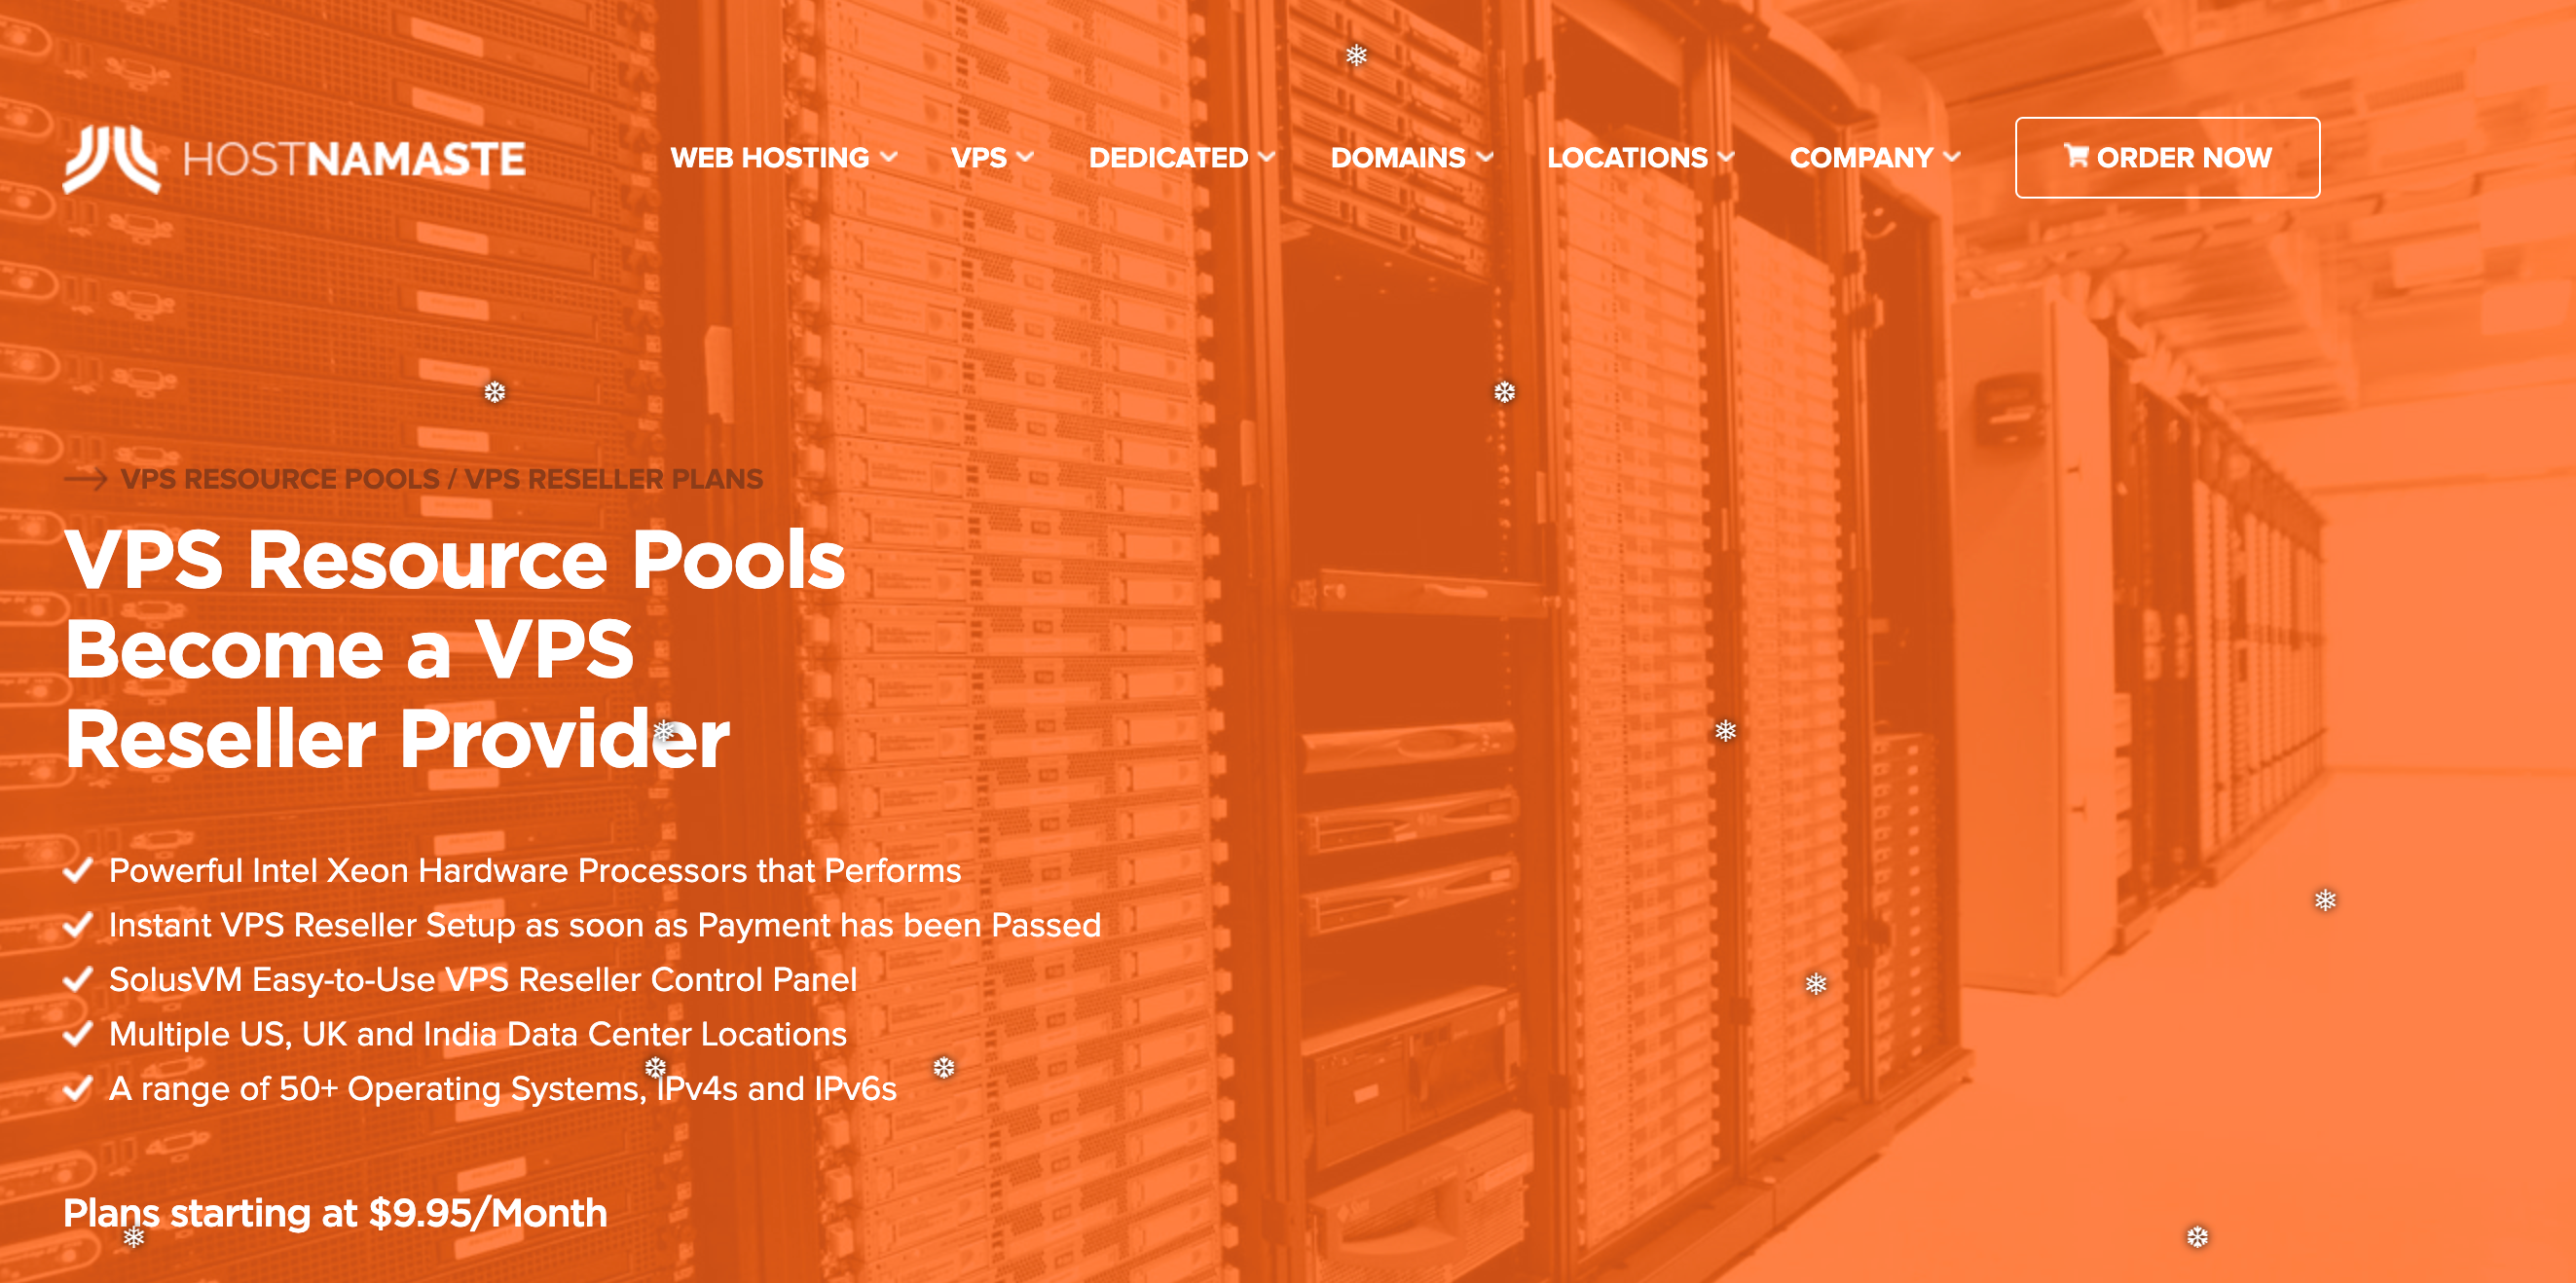 HostNamaste Review- VPS Resource Pools